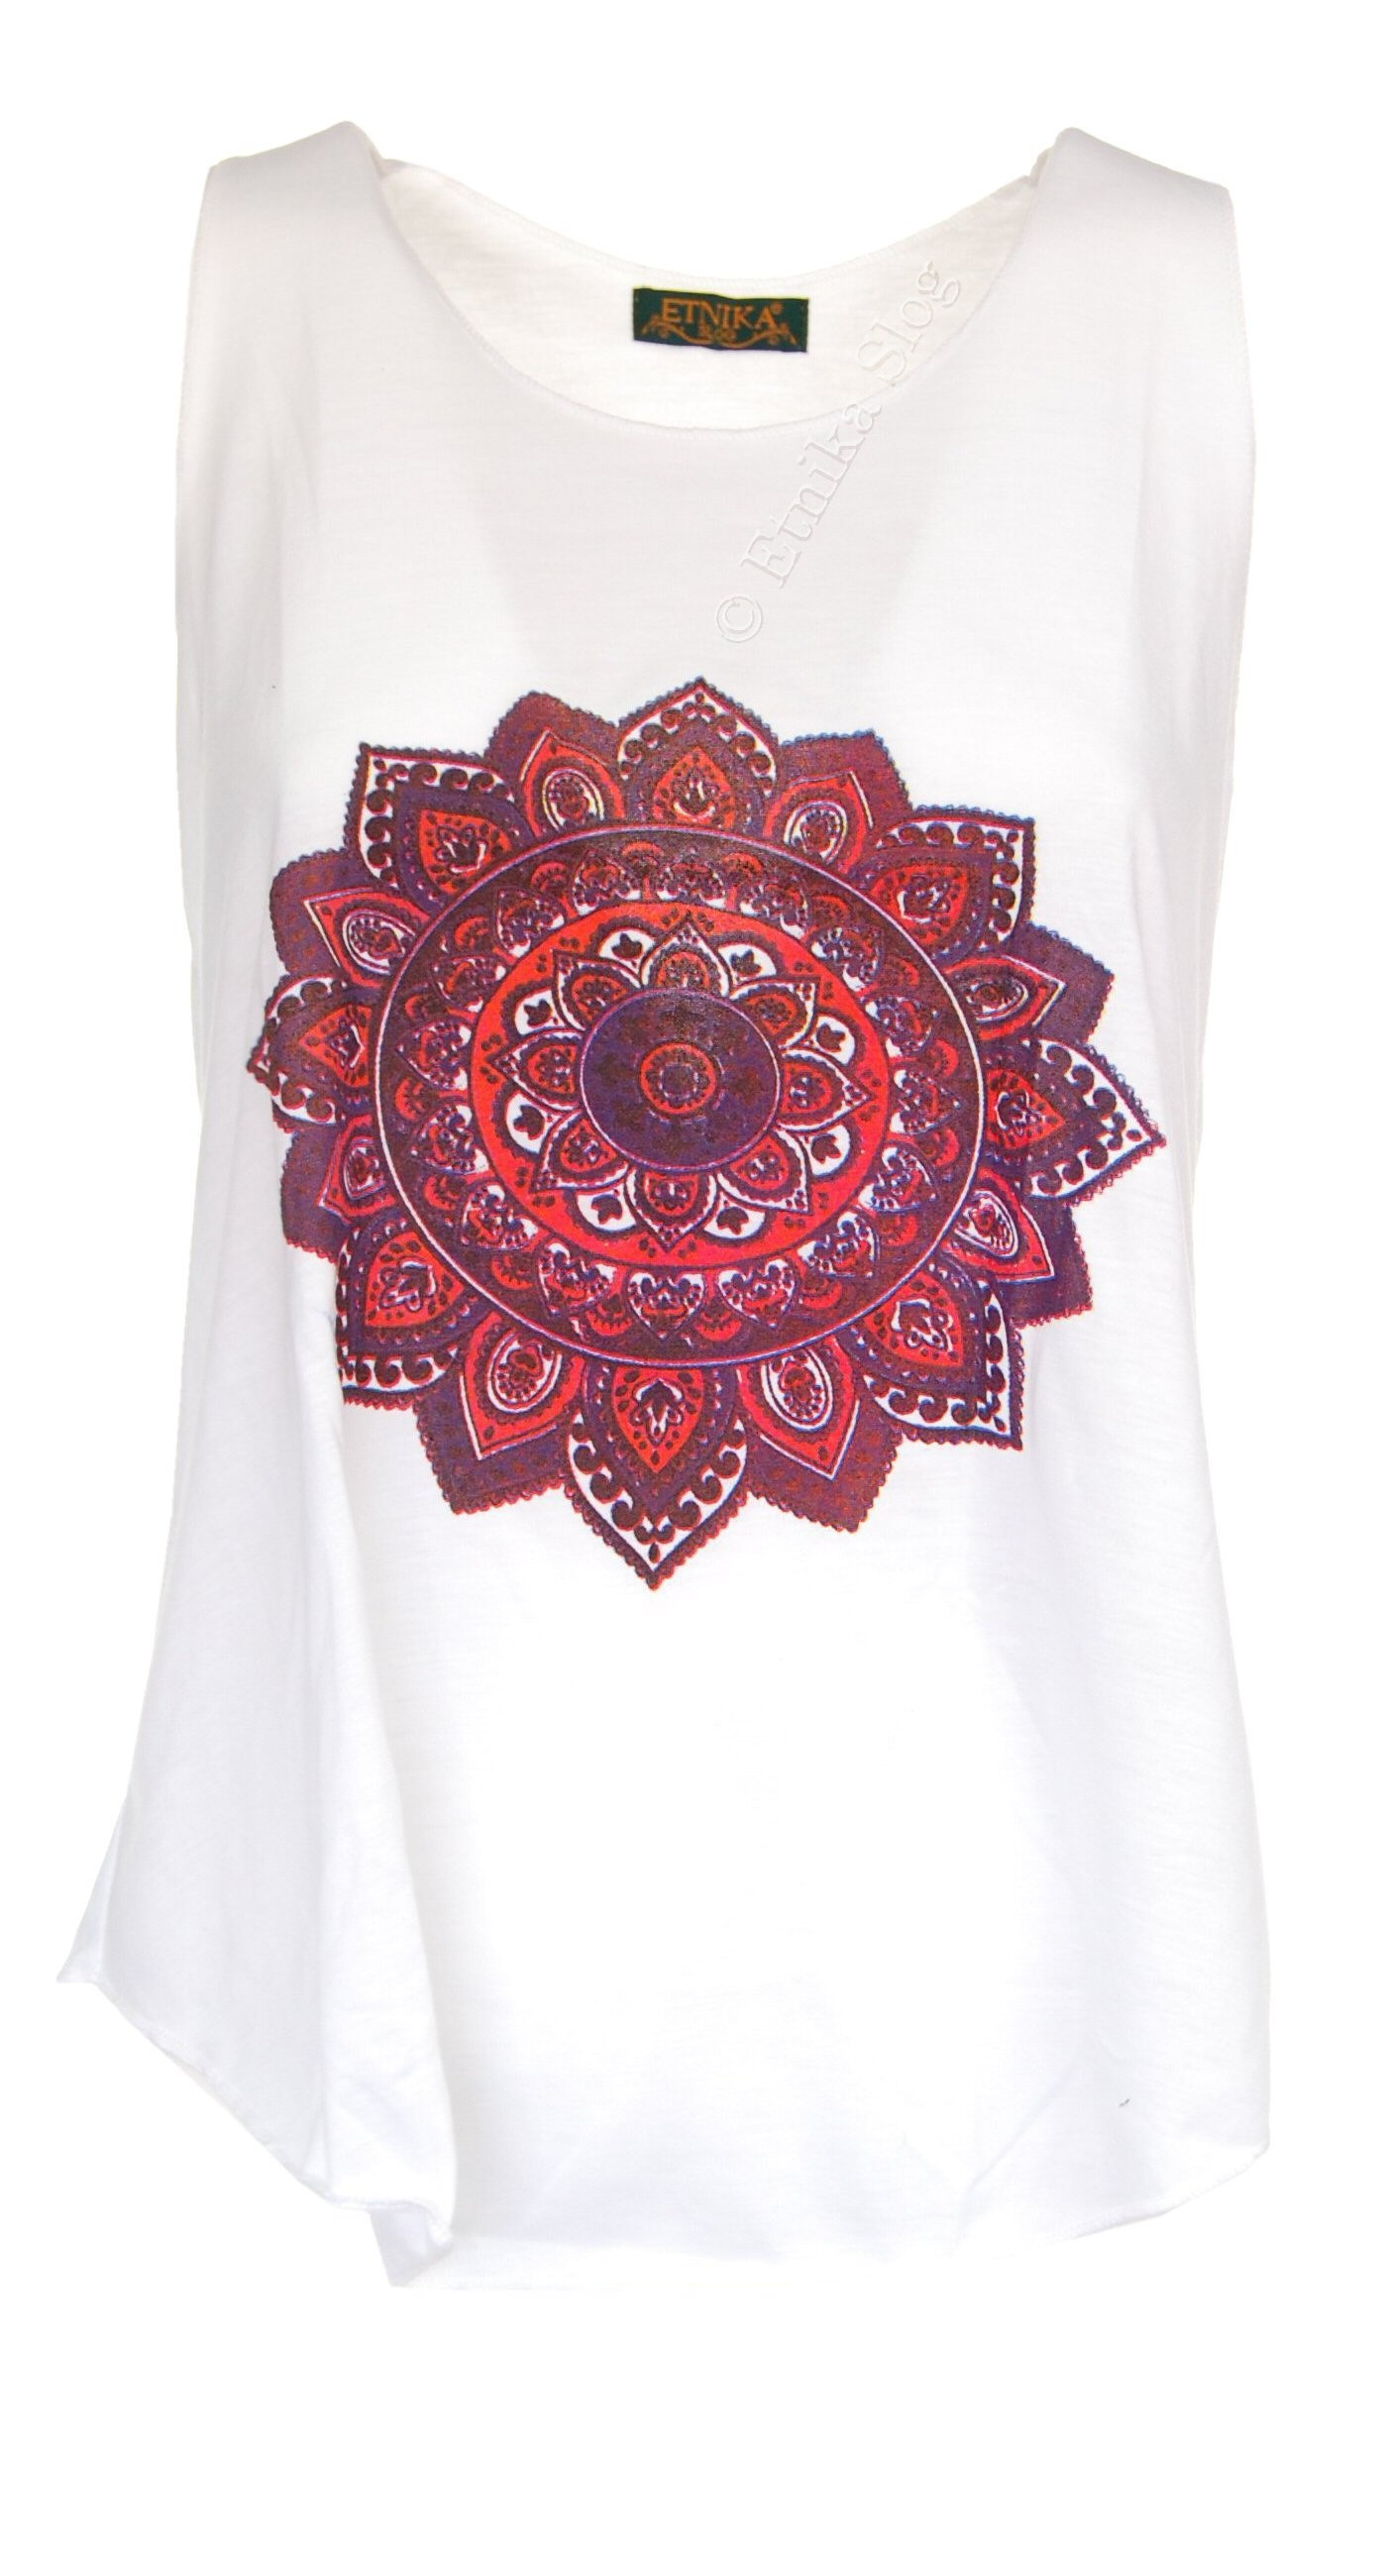 TOPS WITH PRINTS AB-BCT04-21 - Oriente Import S.r.l.